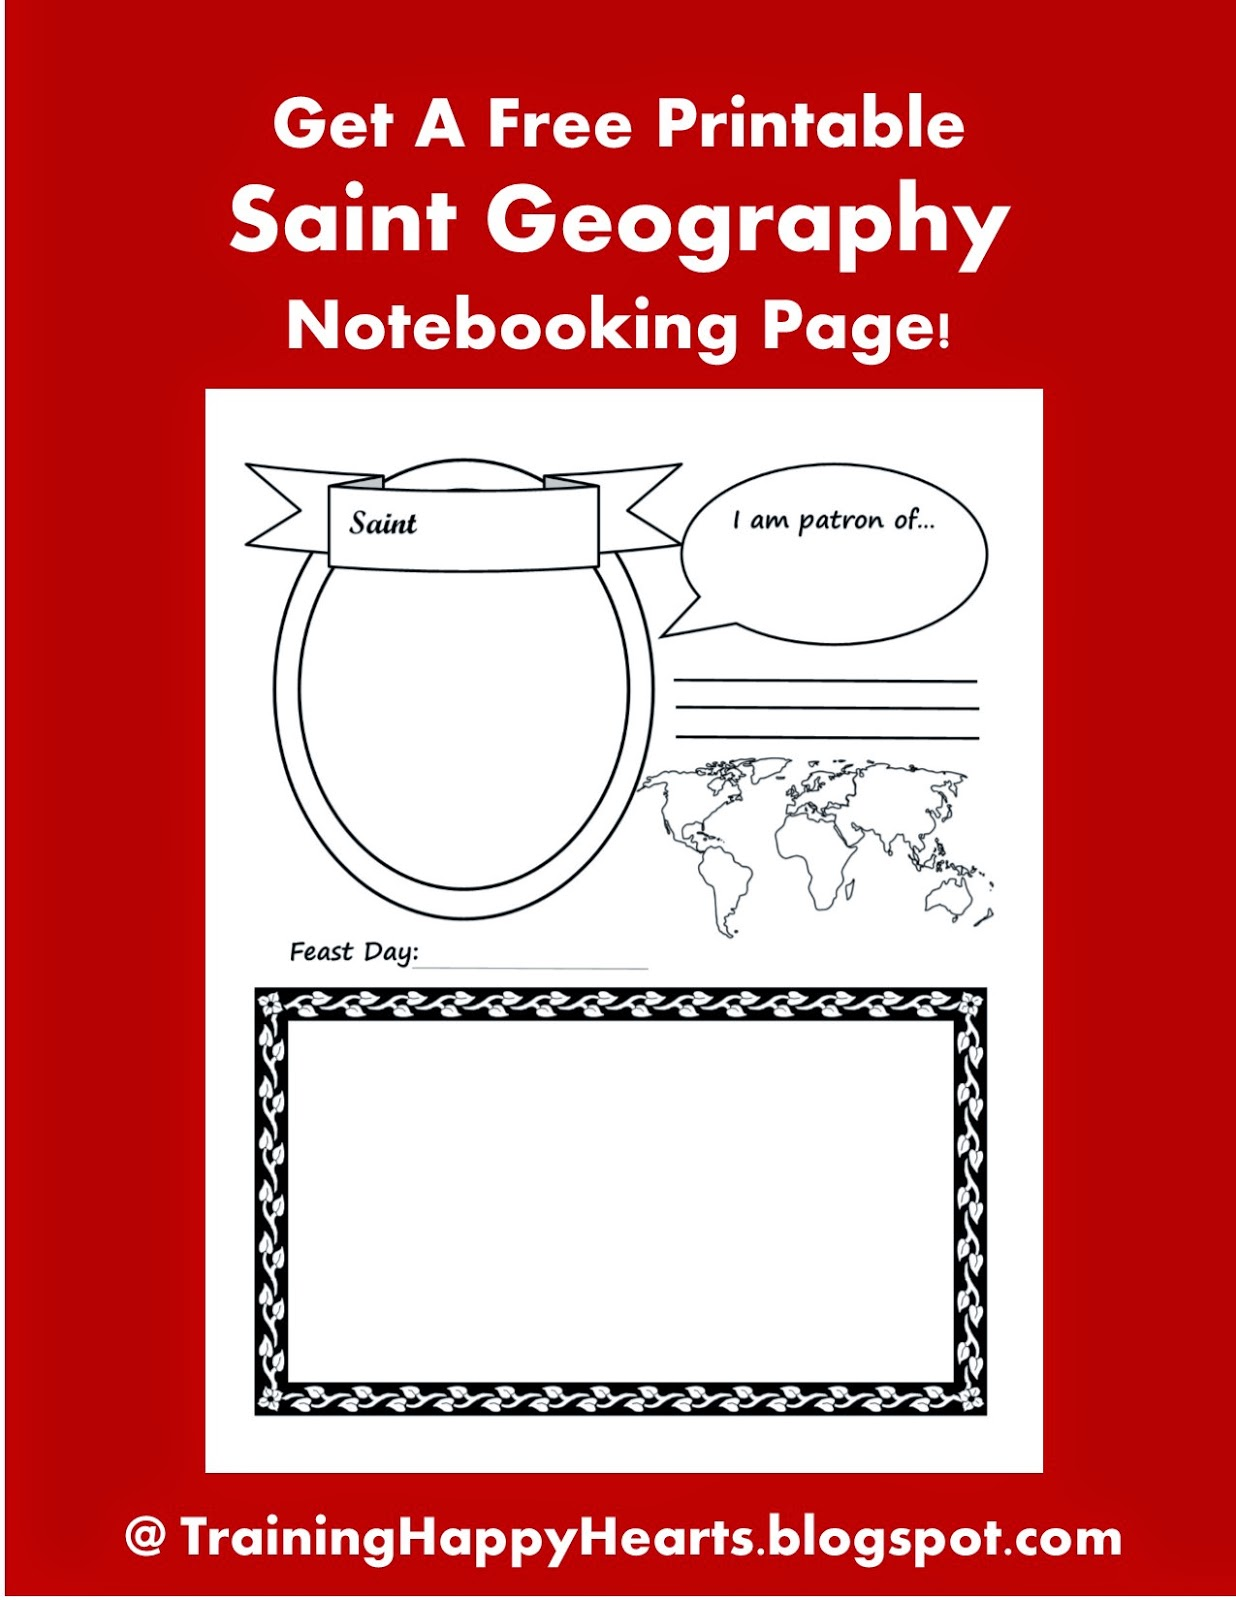 http://traininghappyhearts.blogspot.com/2015/02/get-free-printable-saint-geogrpahy.html